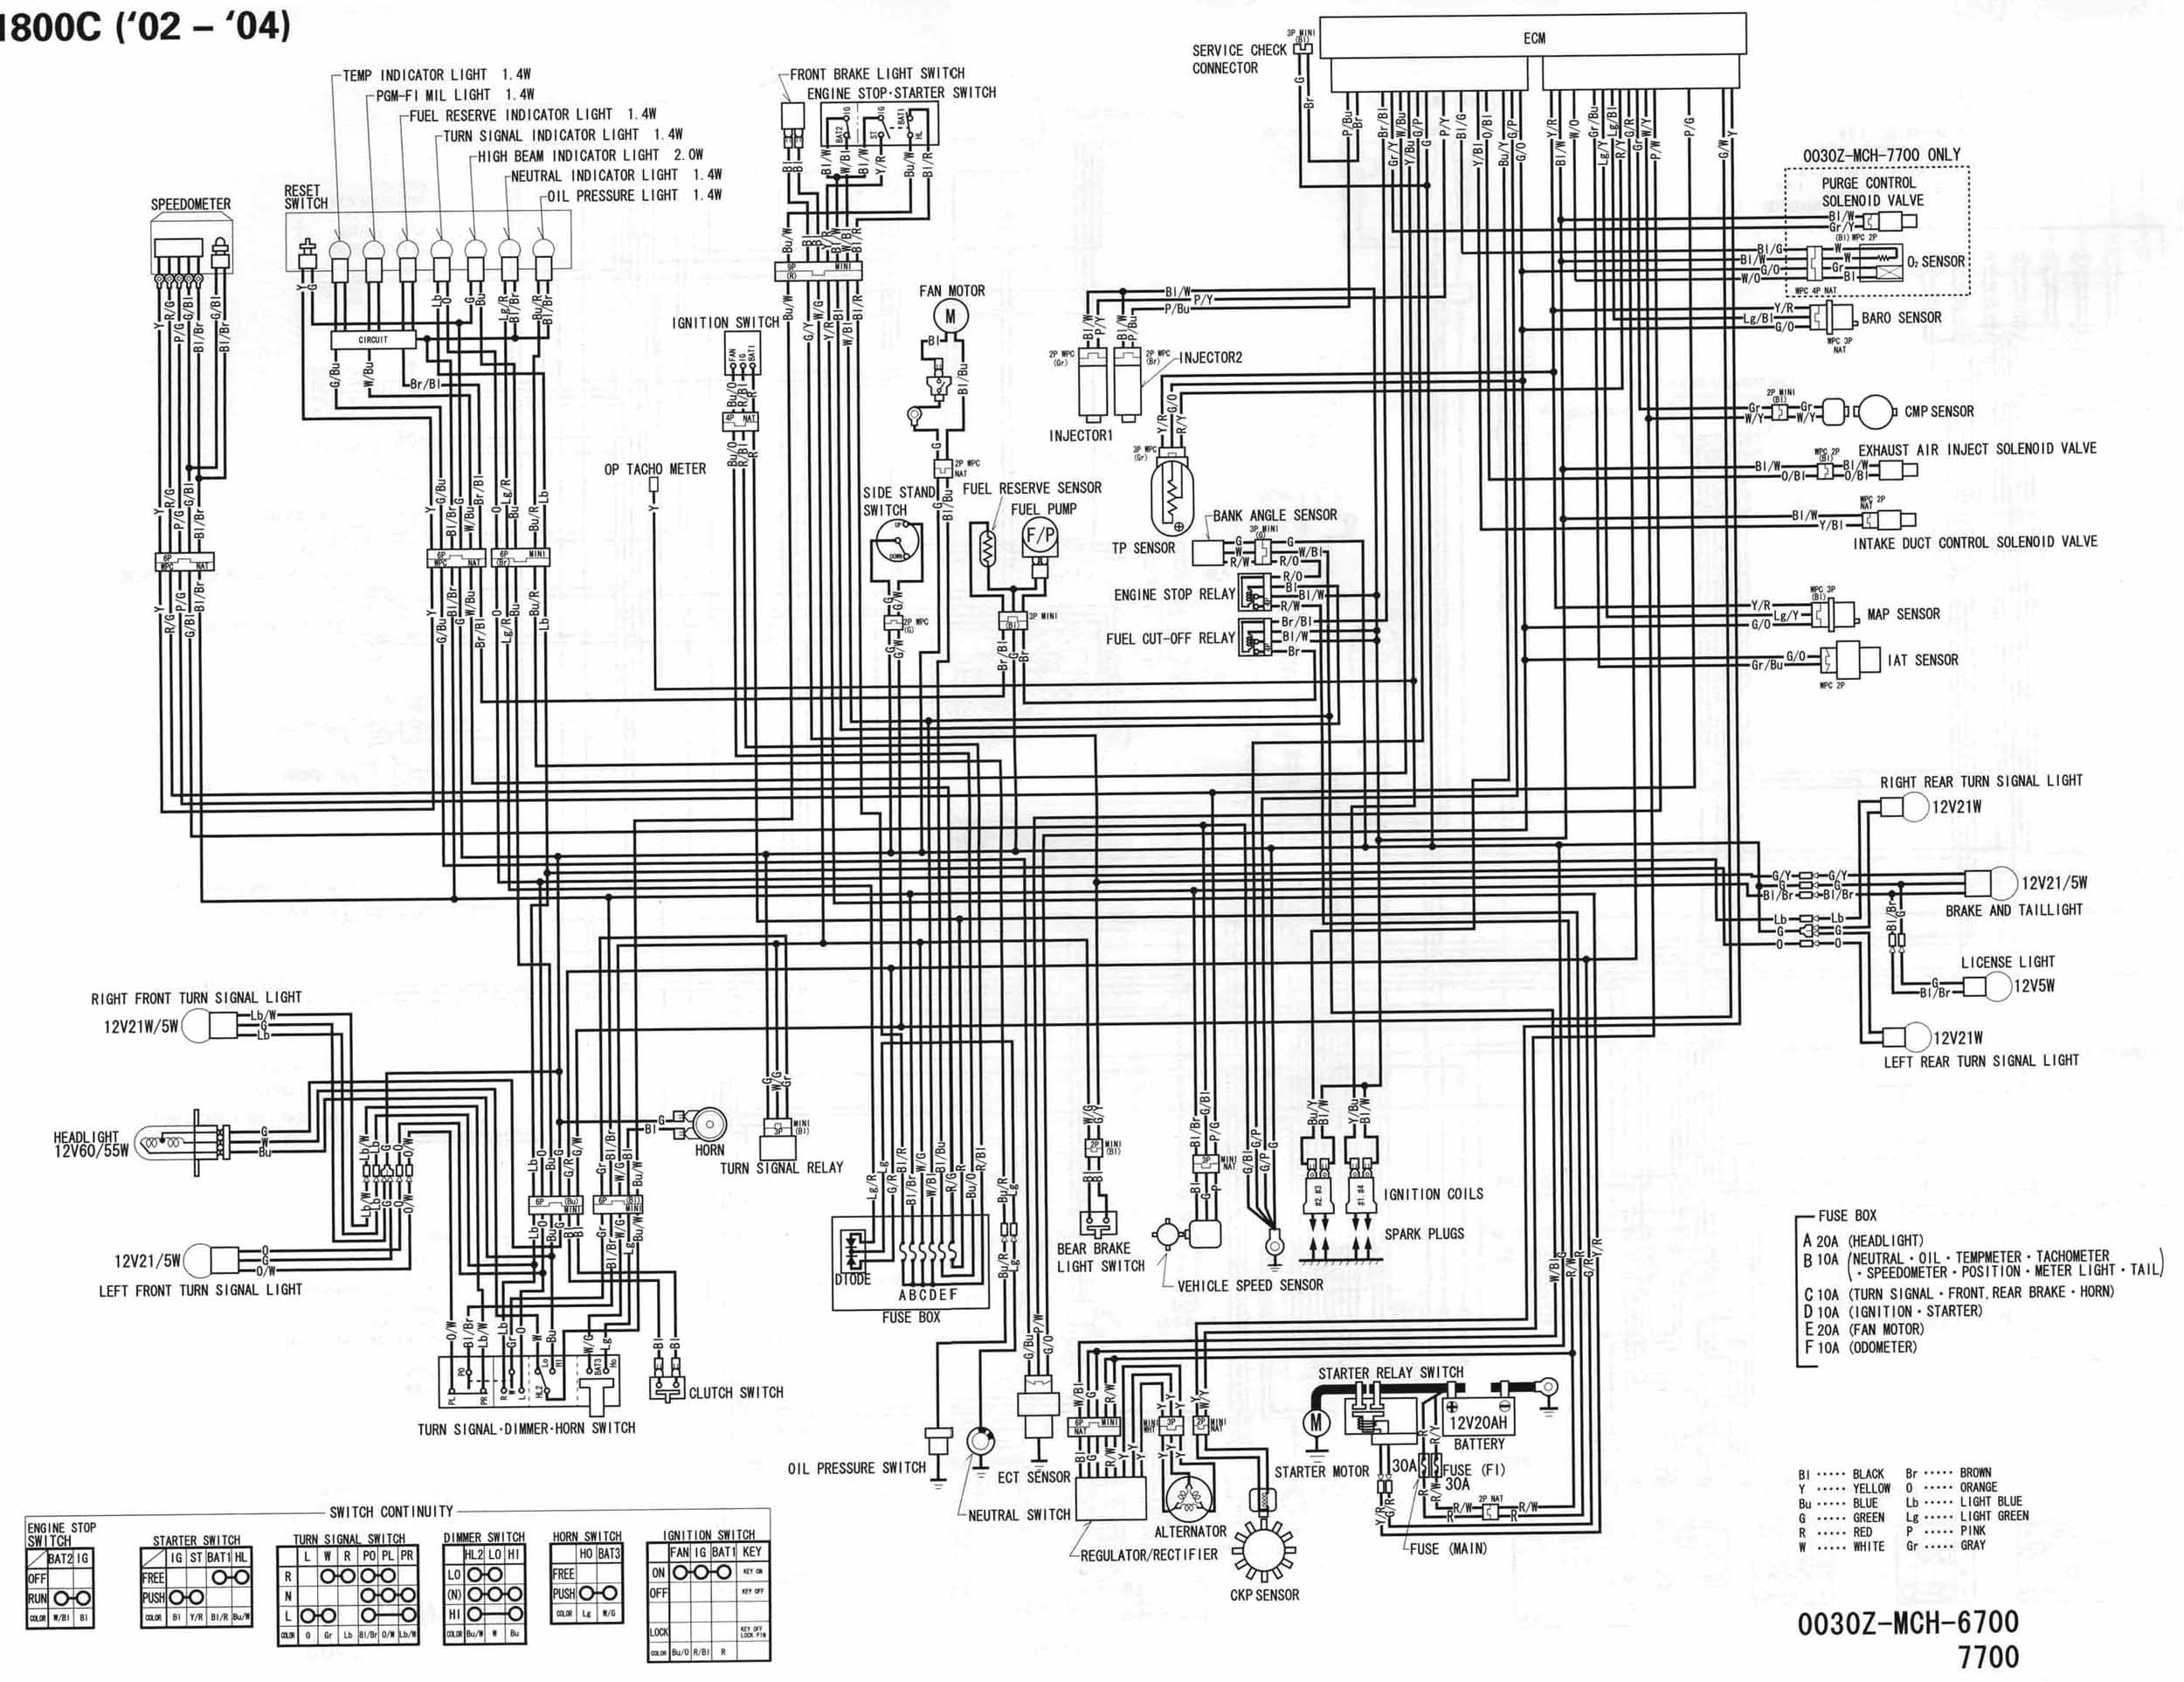 02 04_VTX1800_C_schematic motorcycle wire schematics bareass choppers motorcycle tech pages wiring diagram for victory motorcycles at bakdesigns.co